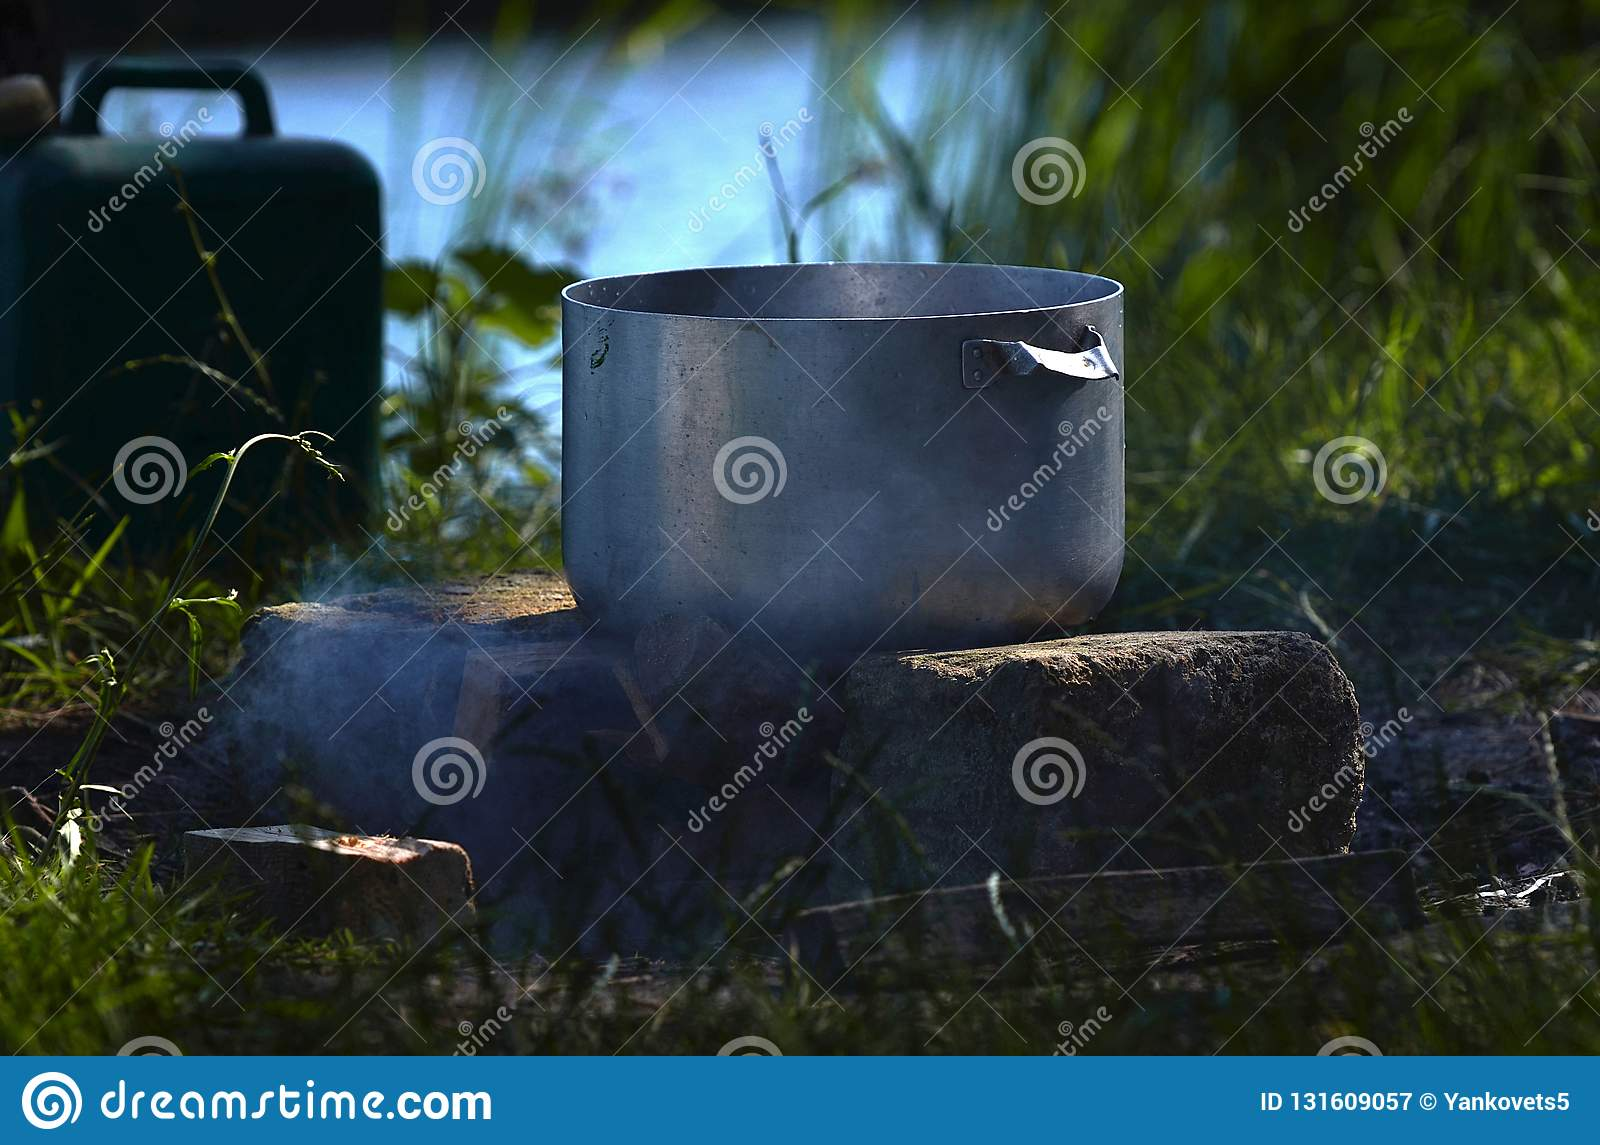 At a picnic near the river, a large metal pan in which fish soup is prepared against the background of green grass and smoke